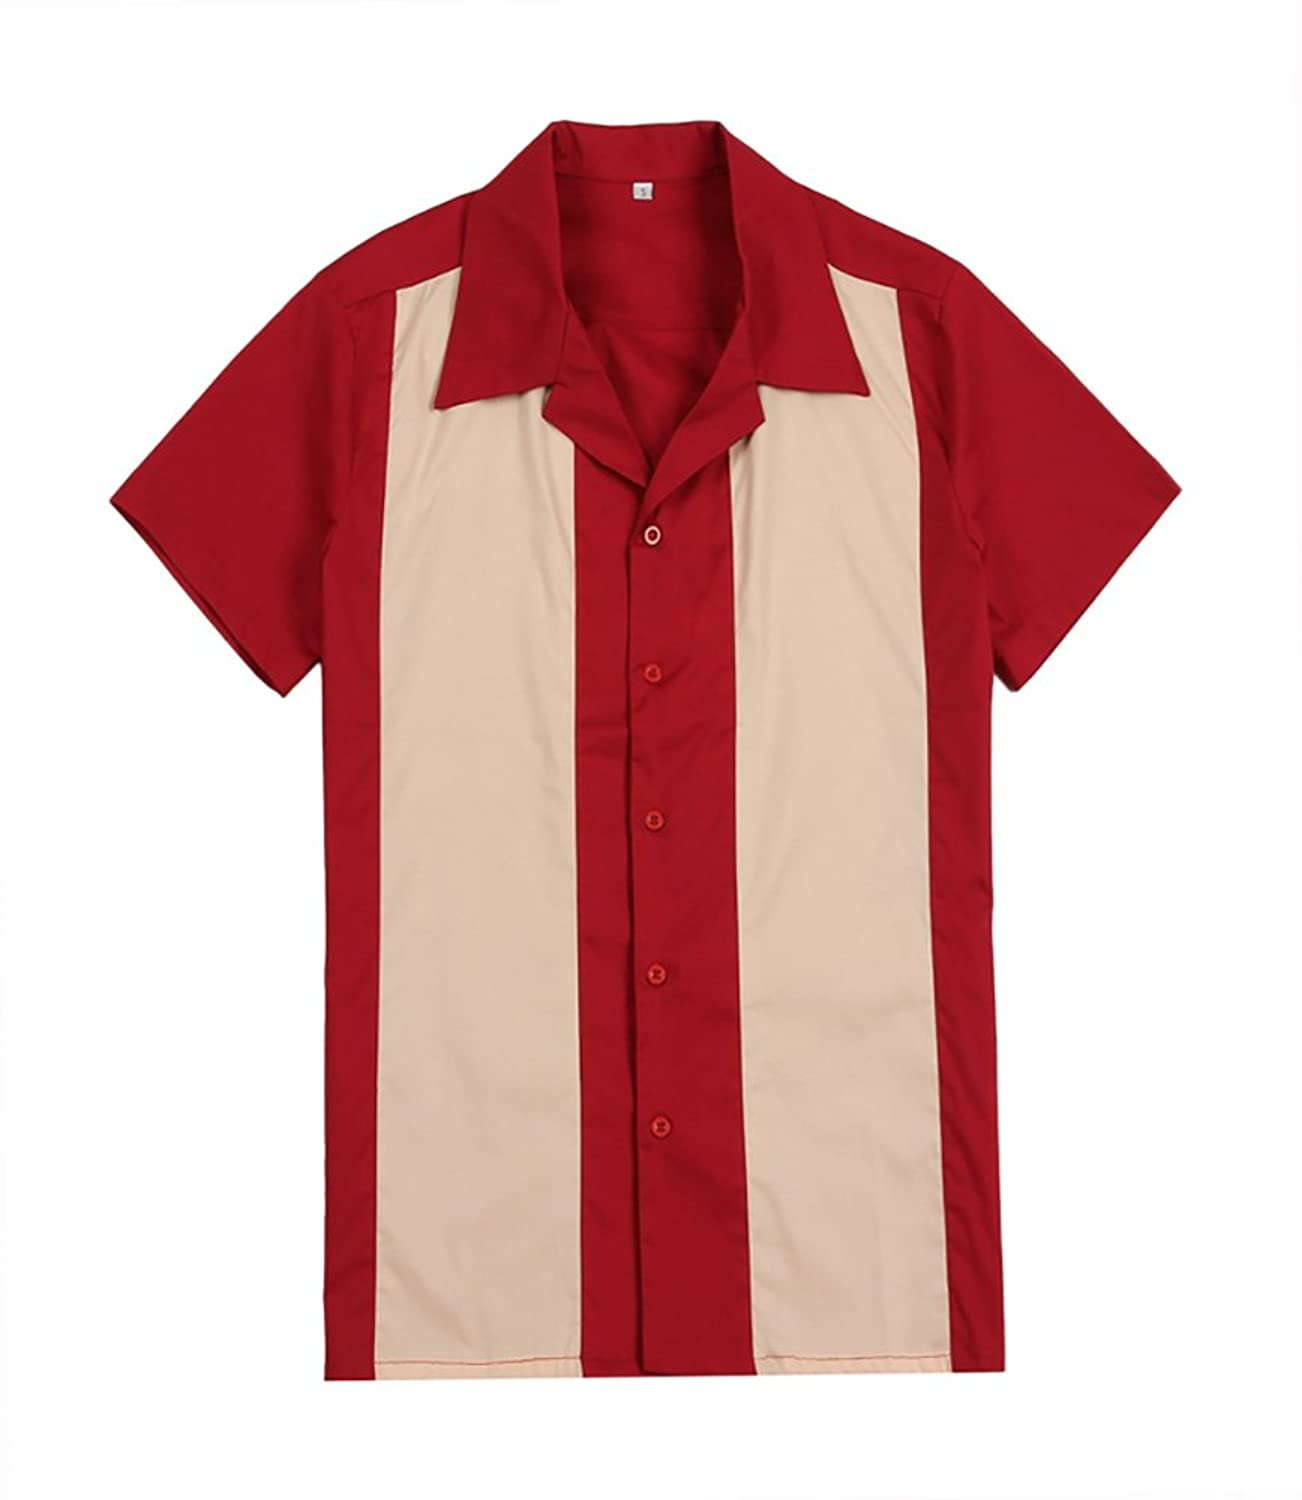 Retro Clothing for Men | Vintage Men's Fashion Mens Rockabilly Vintage 50s Clothing Short Sleeve Bowling Shirts Red Cream $24.71 AT vintagedancer.com